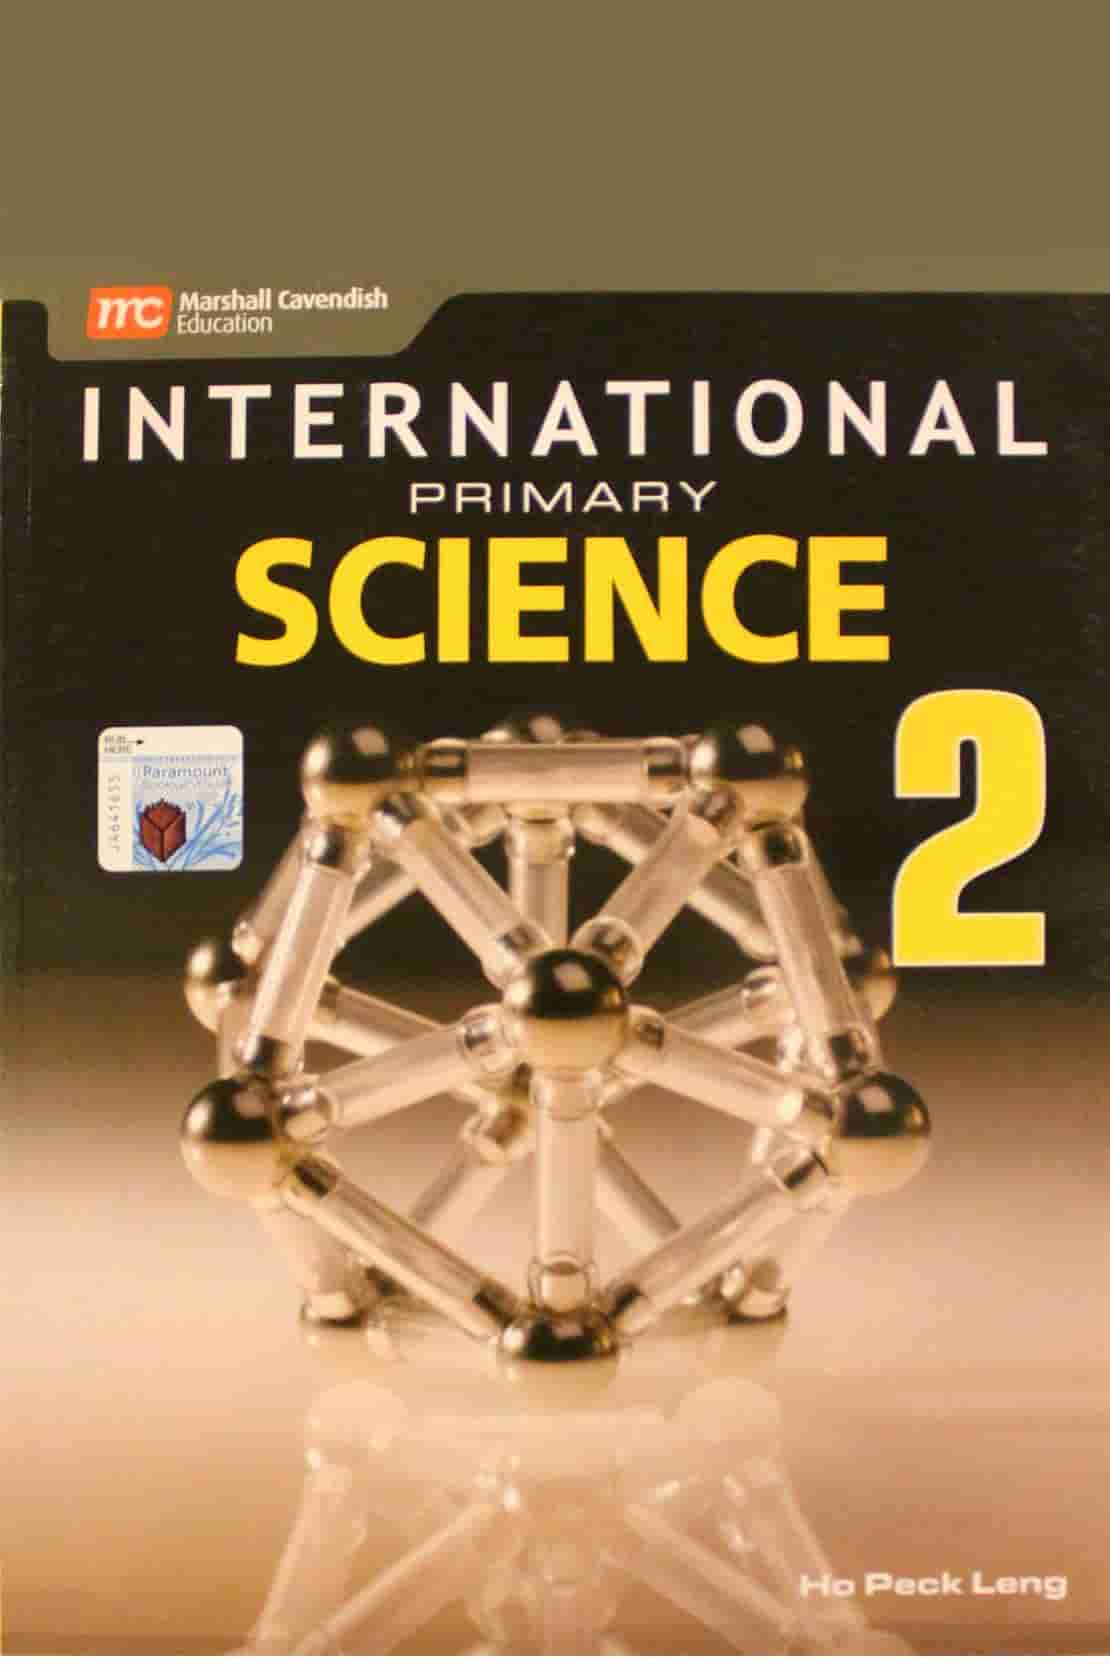 INTERNATIONAL PRIMARY SCIENCE TEXTBOOK 2